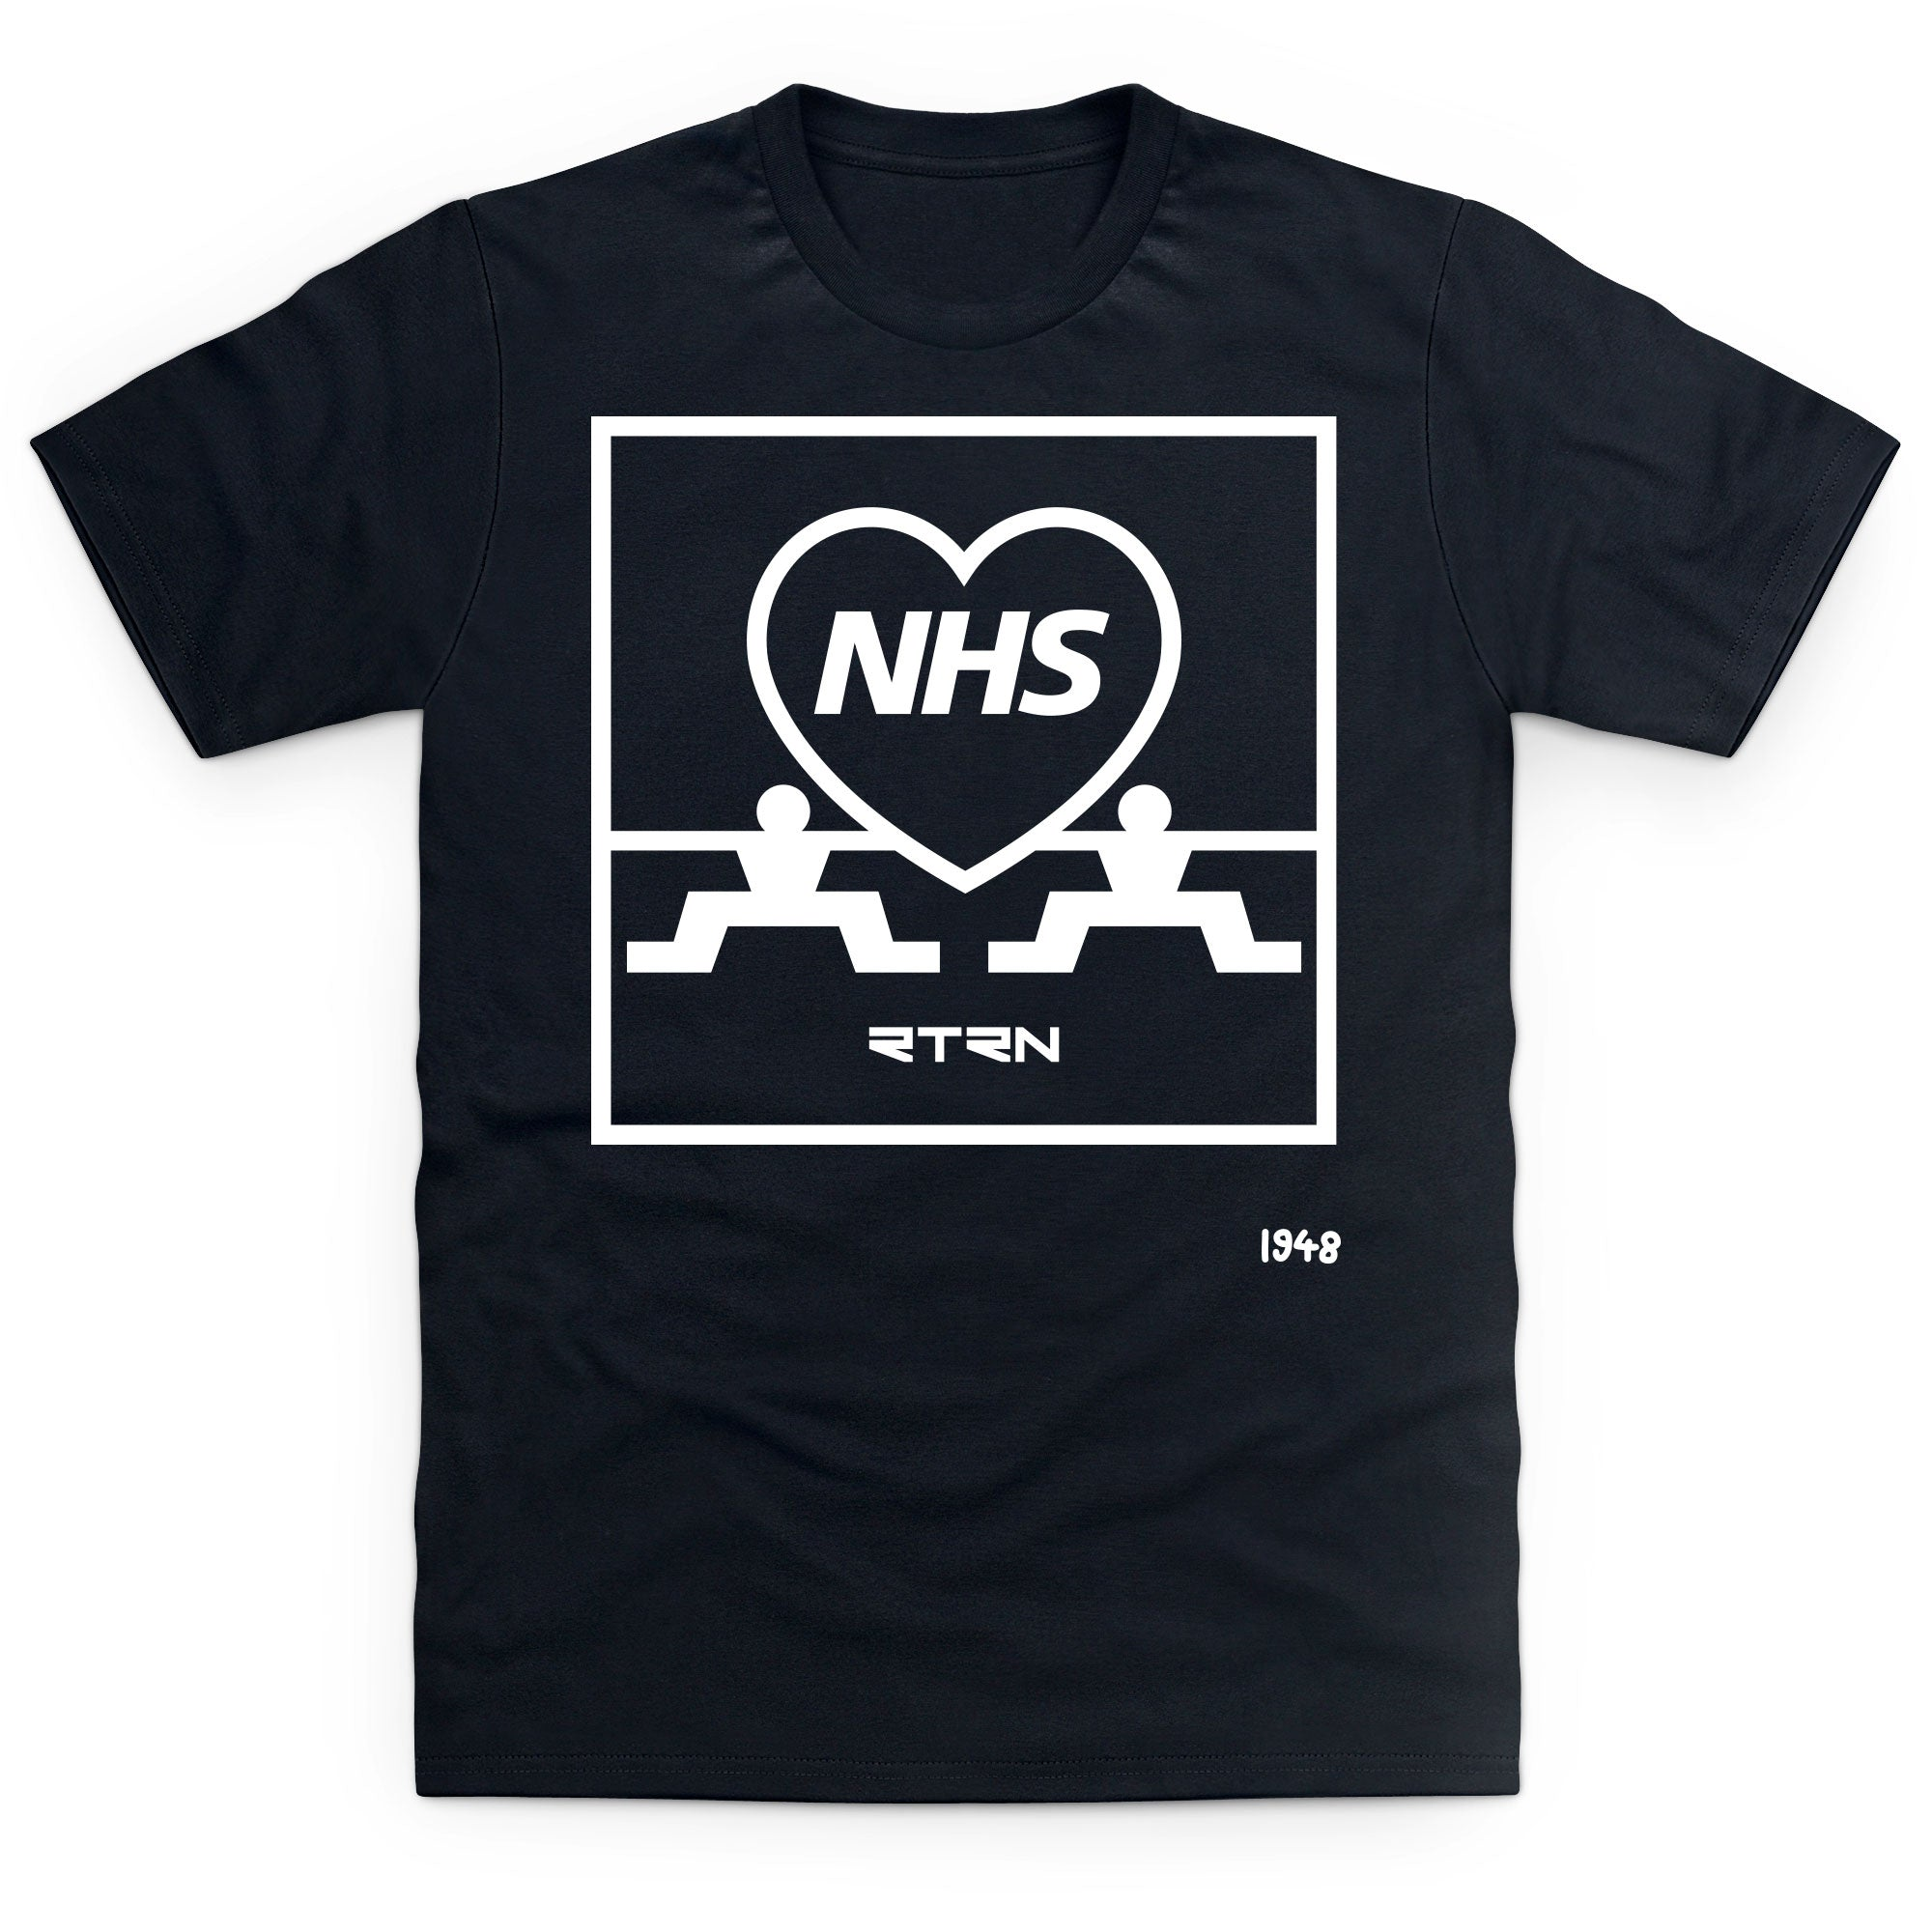 NHS Since 1948 T Shirt –RTRN II JUNGLE Merch